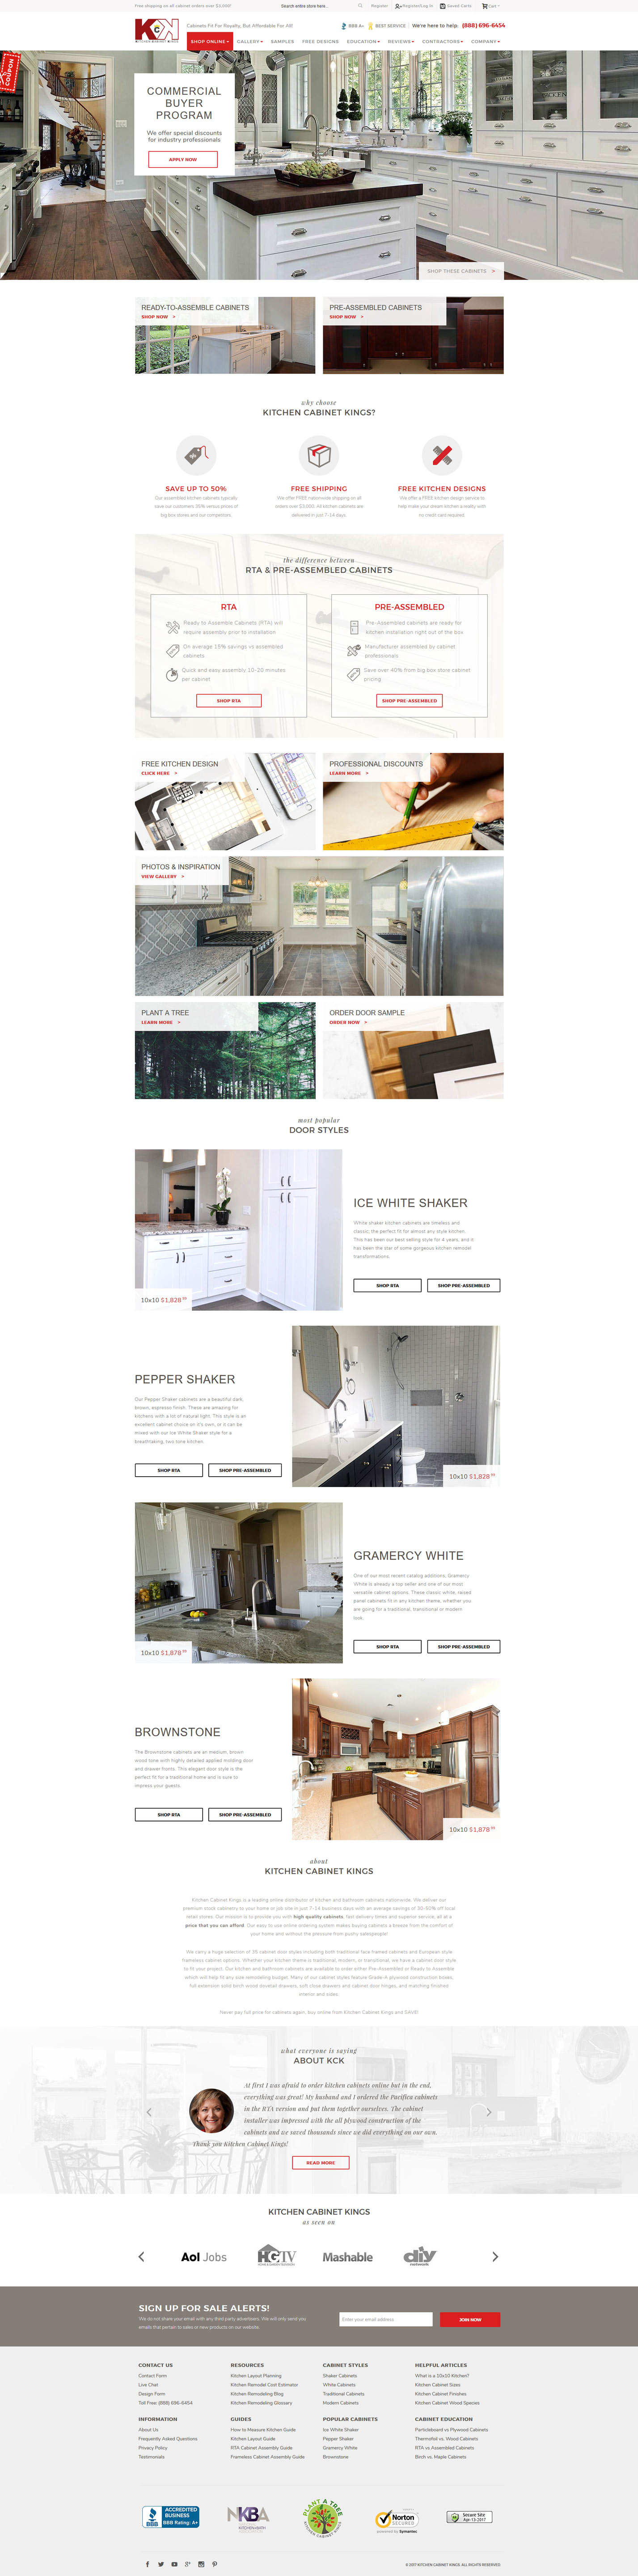 ecommerce website kitchen cabinet kings clemson web design